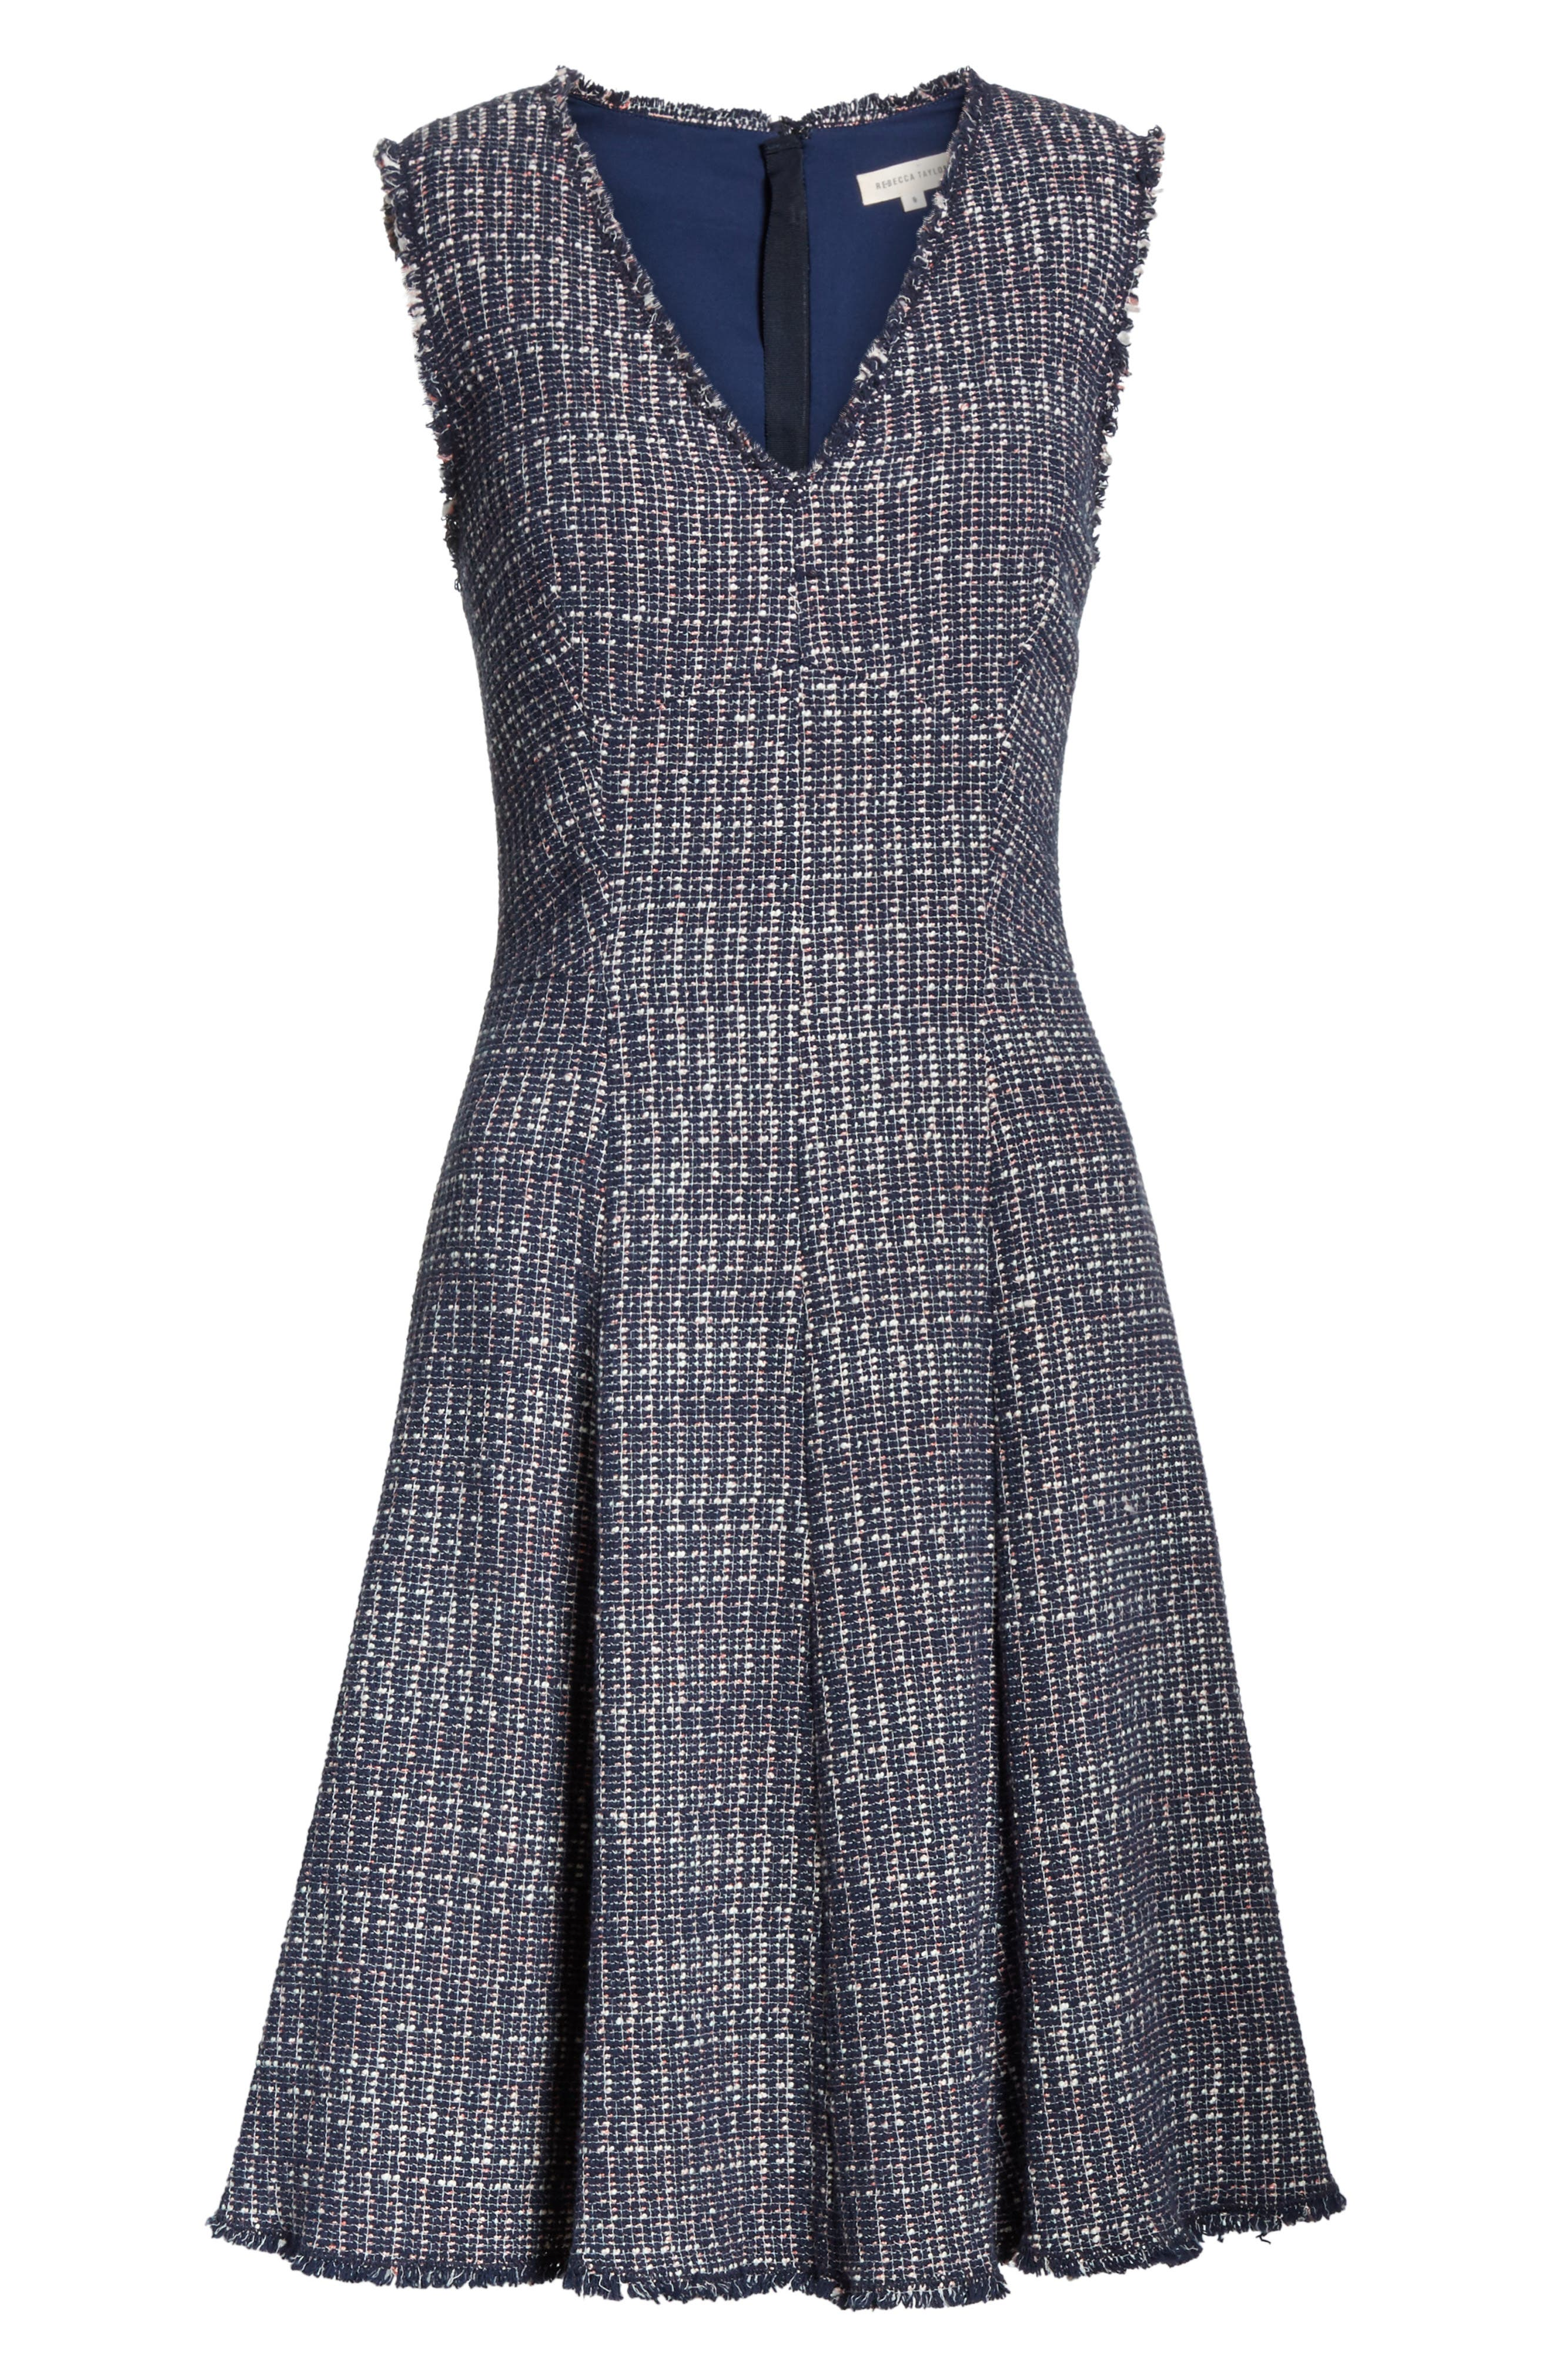 Multi Tweed Fit & Flare Dress,                             Alternate thumbnail 6, color,                             Navy Combo